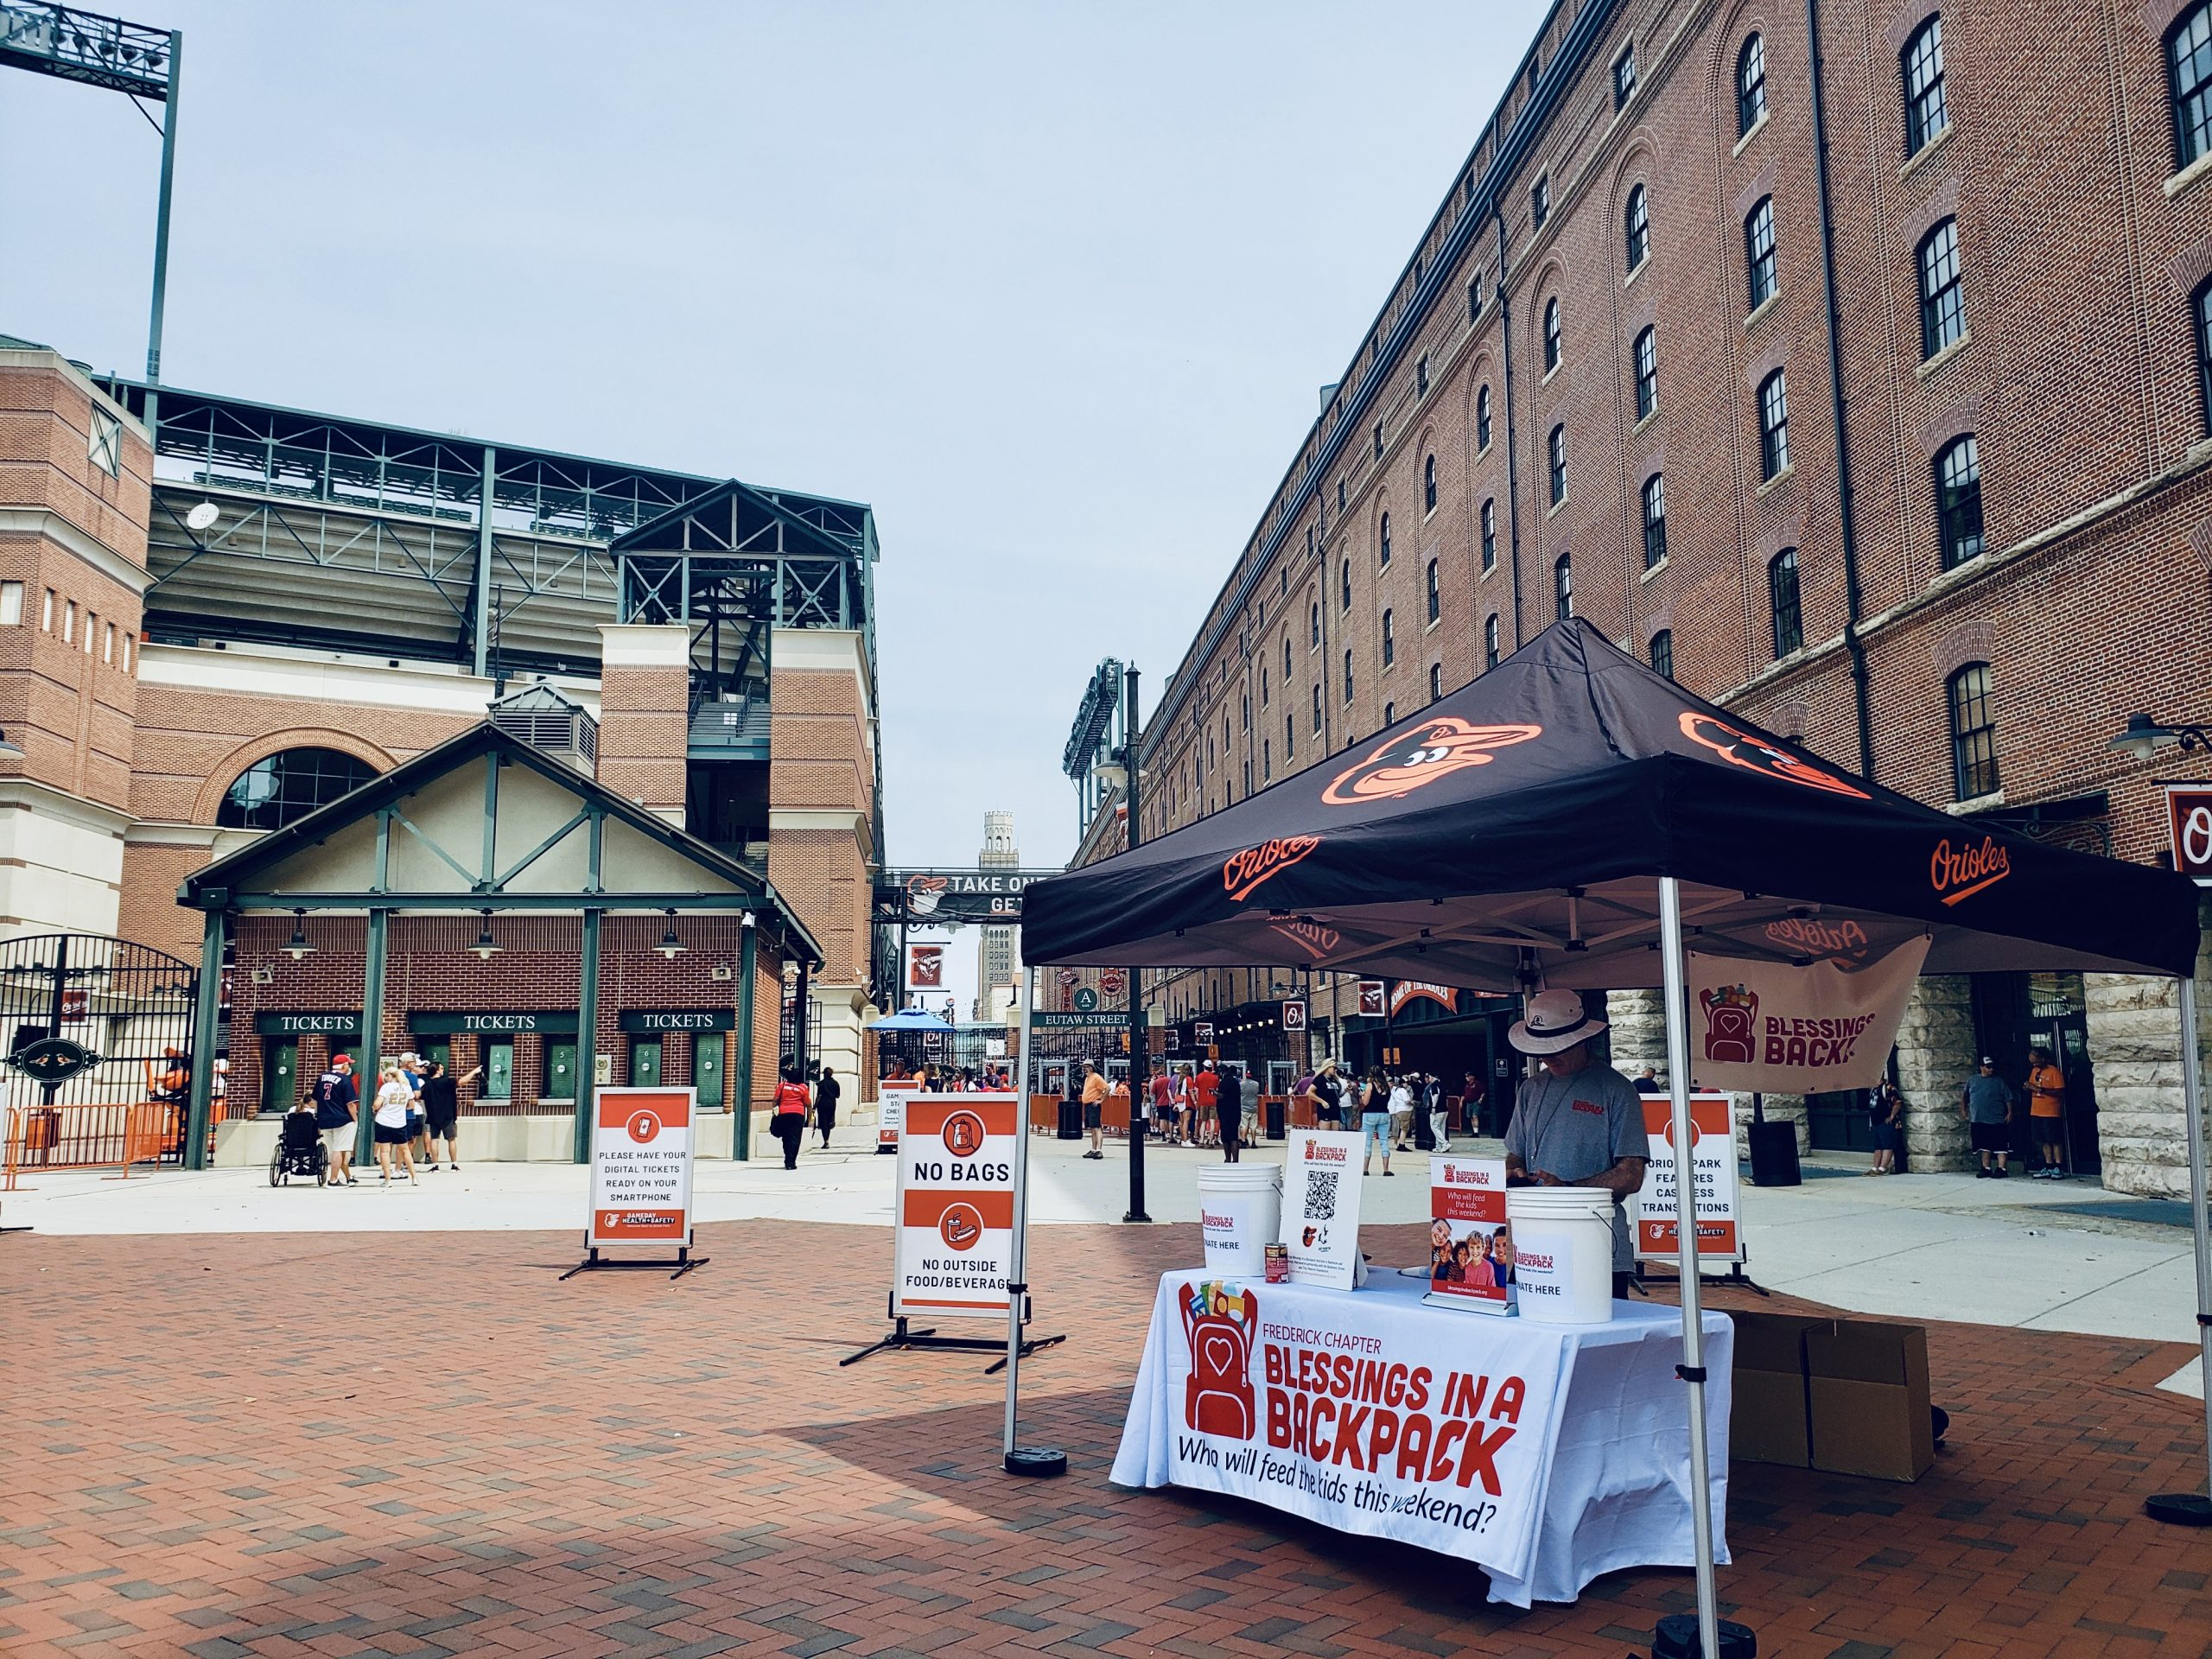 The Baltimore Orioles and The Trey Mancini Foundation team up with Blessings in a Backpack to strike out hunger!